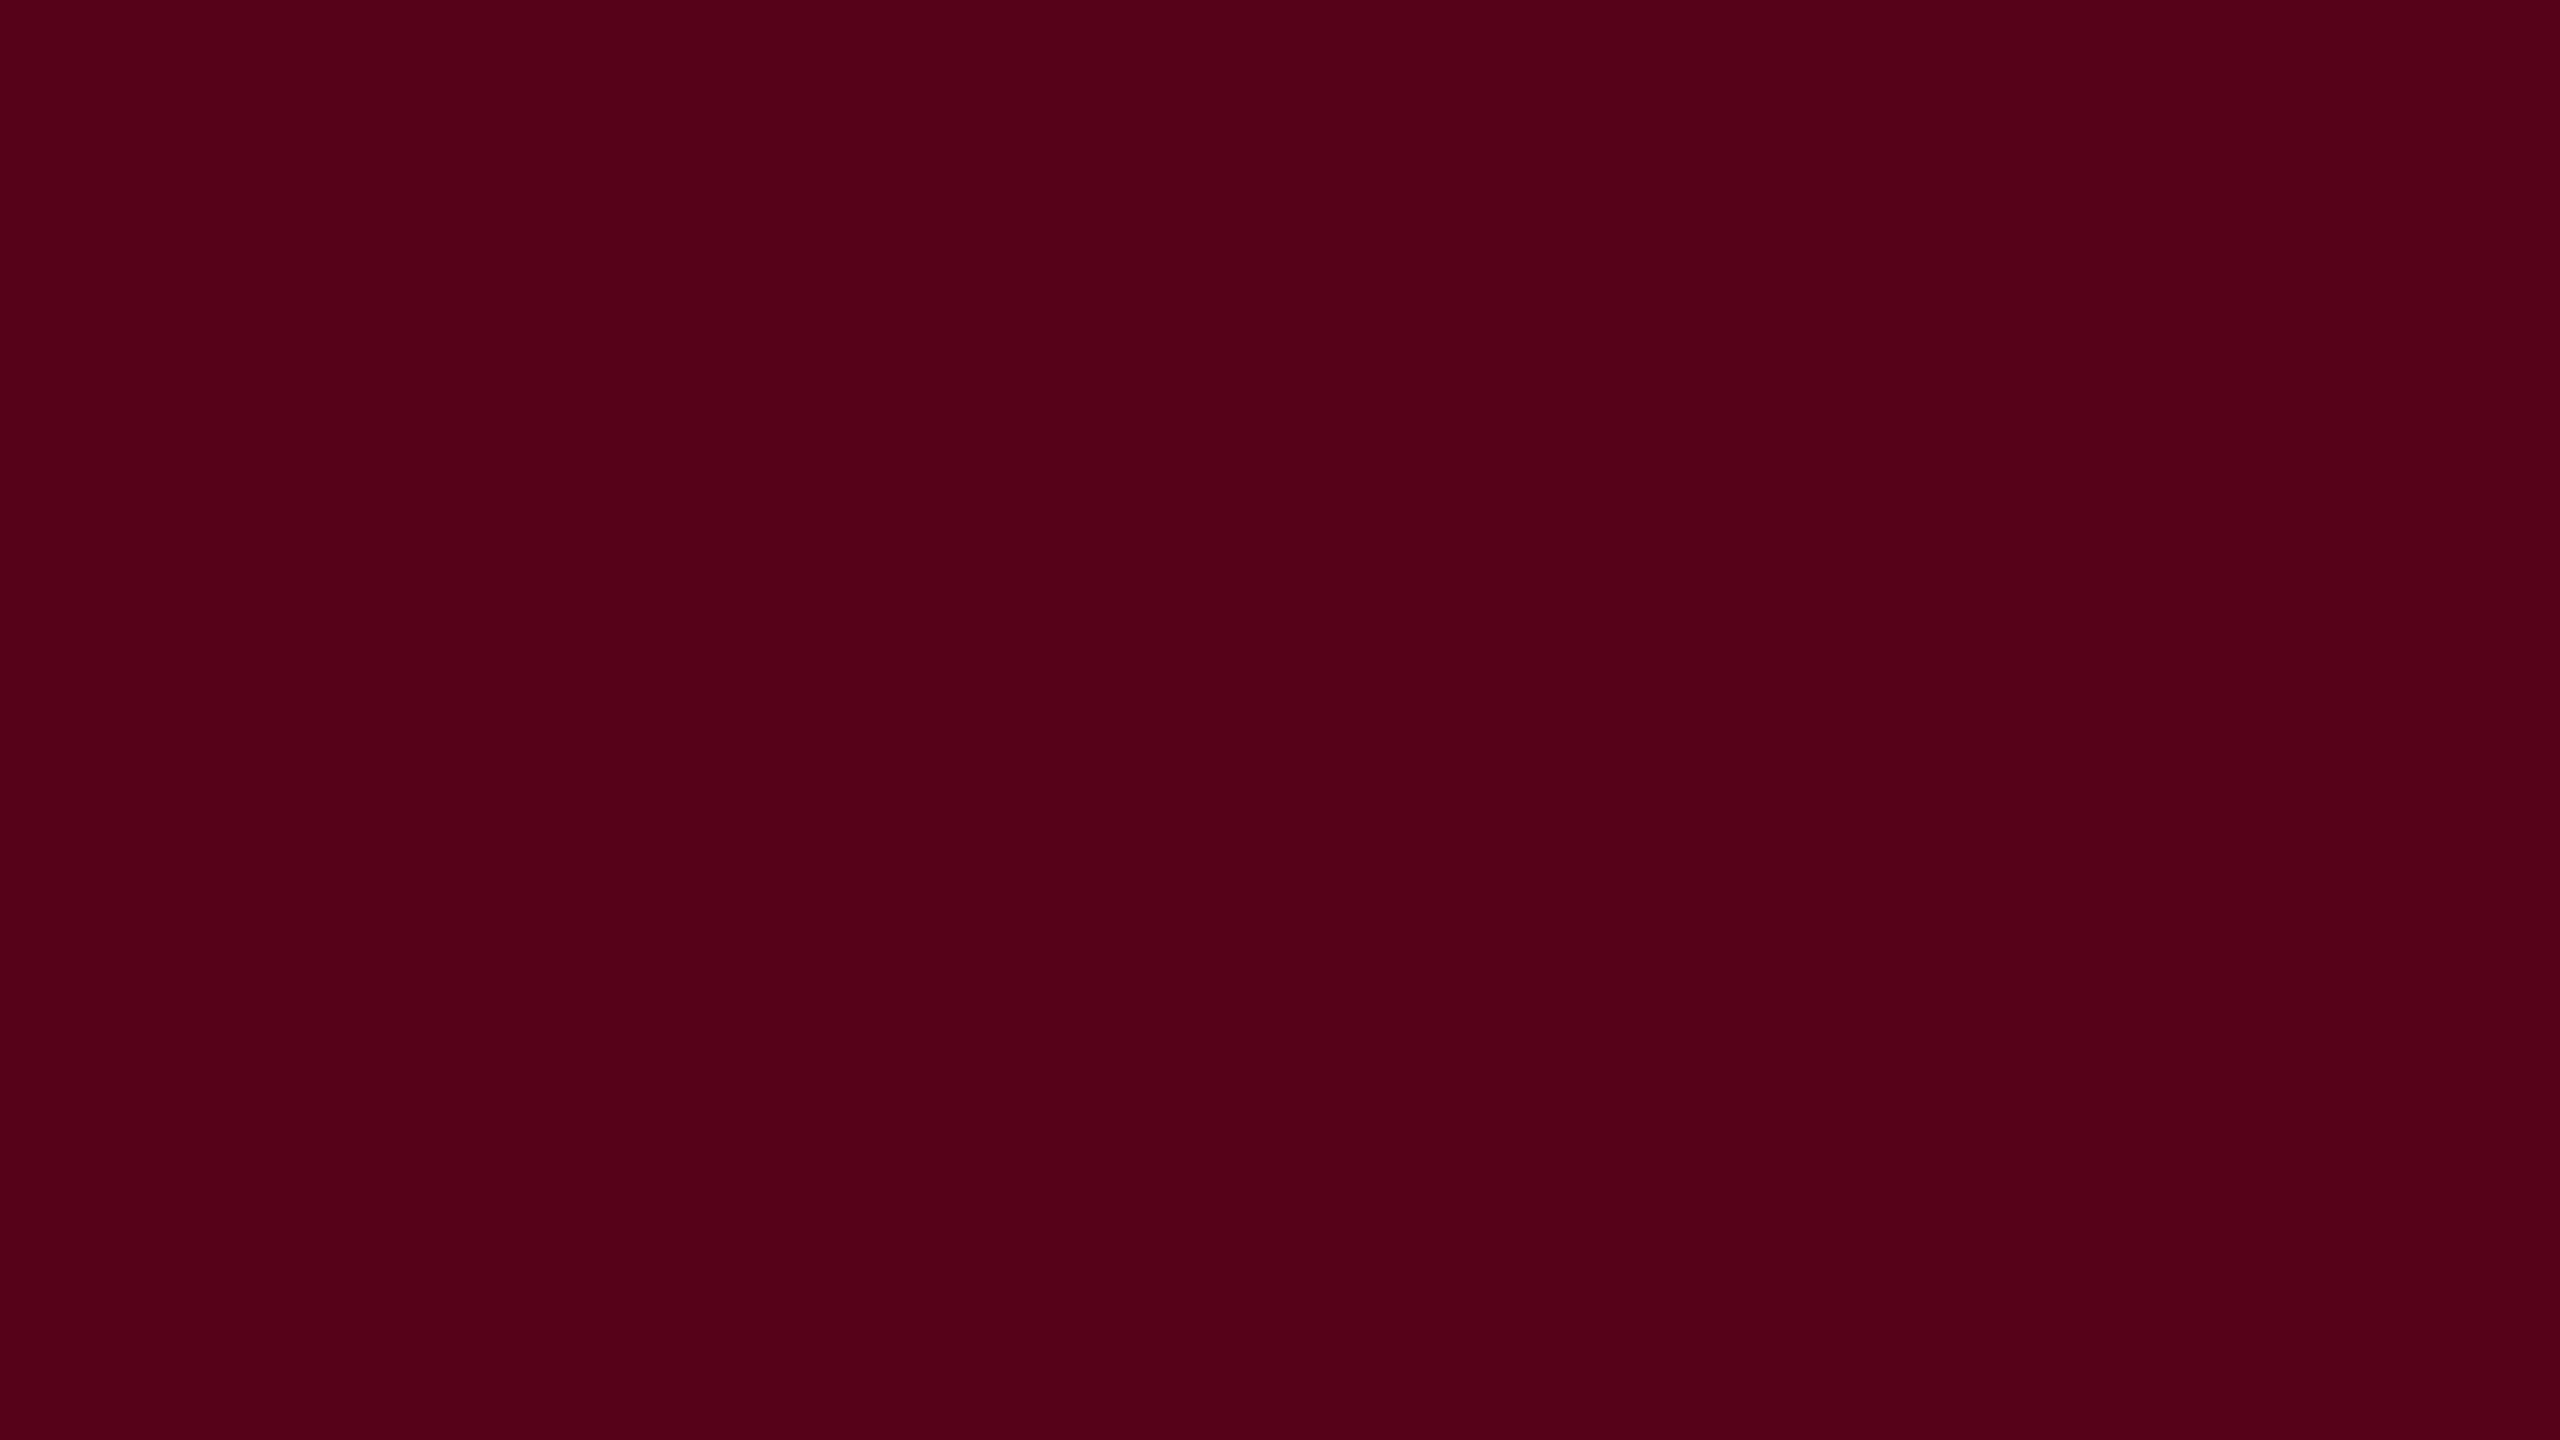 2560x1440 dark scarlet solid color background